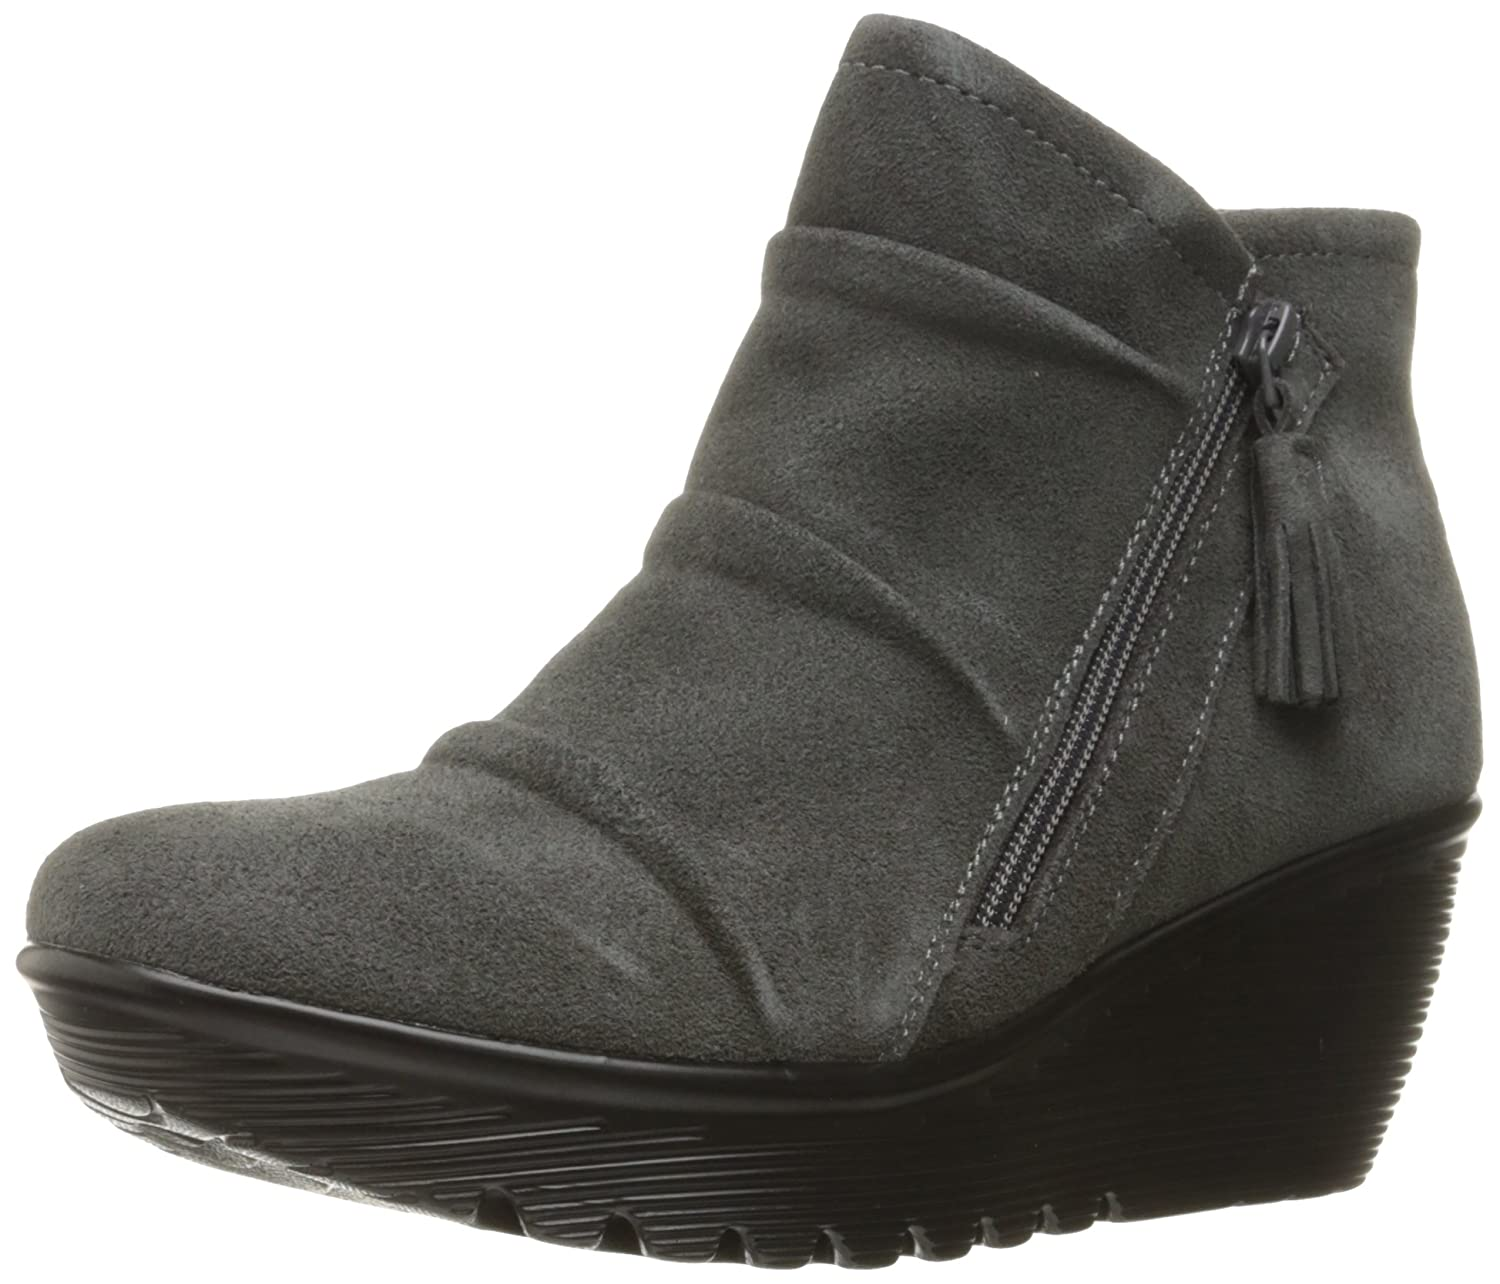 Skechers Womens Parallel-Triple Threat Ankle Bootie  75 B(M) US|Charcoal Suede